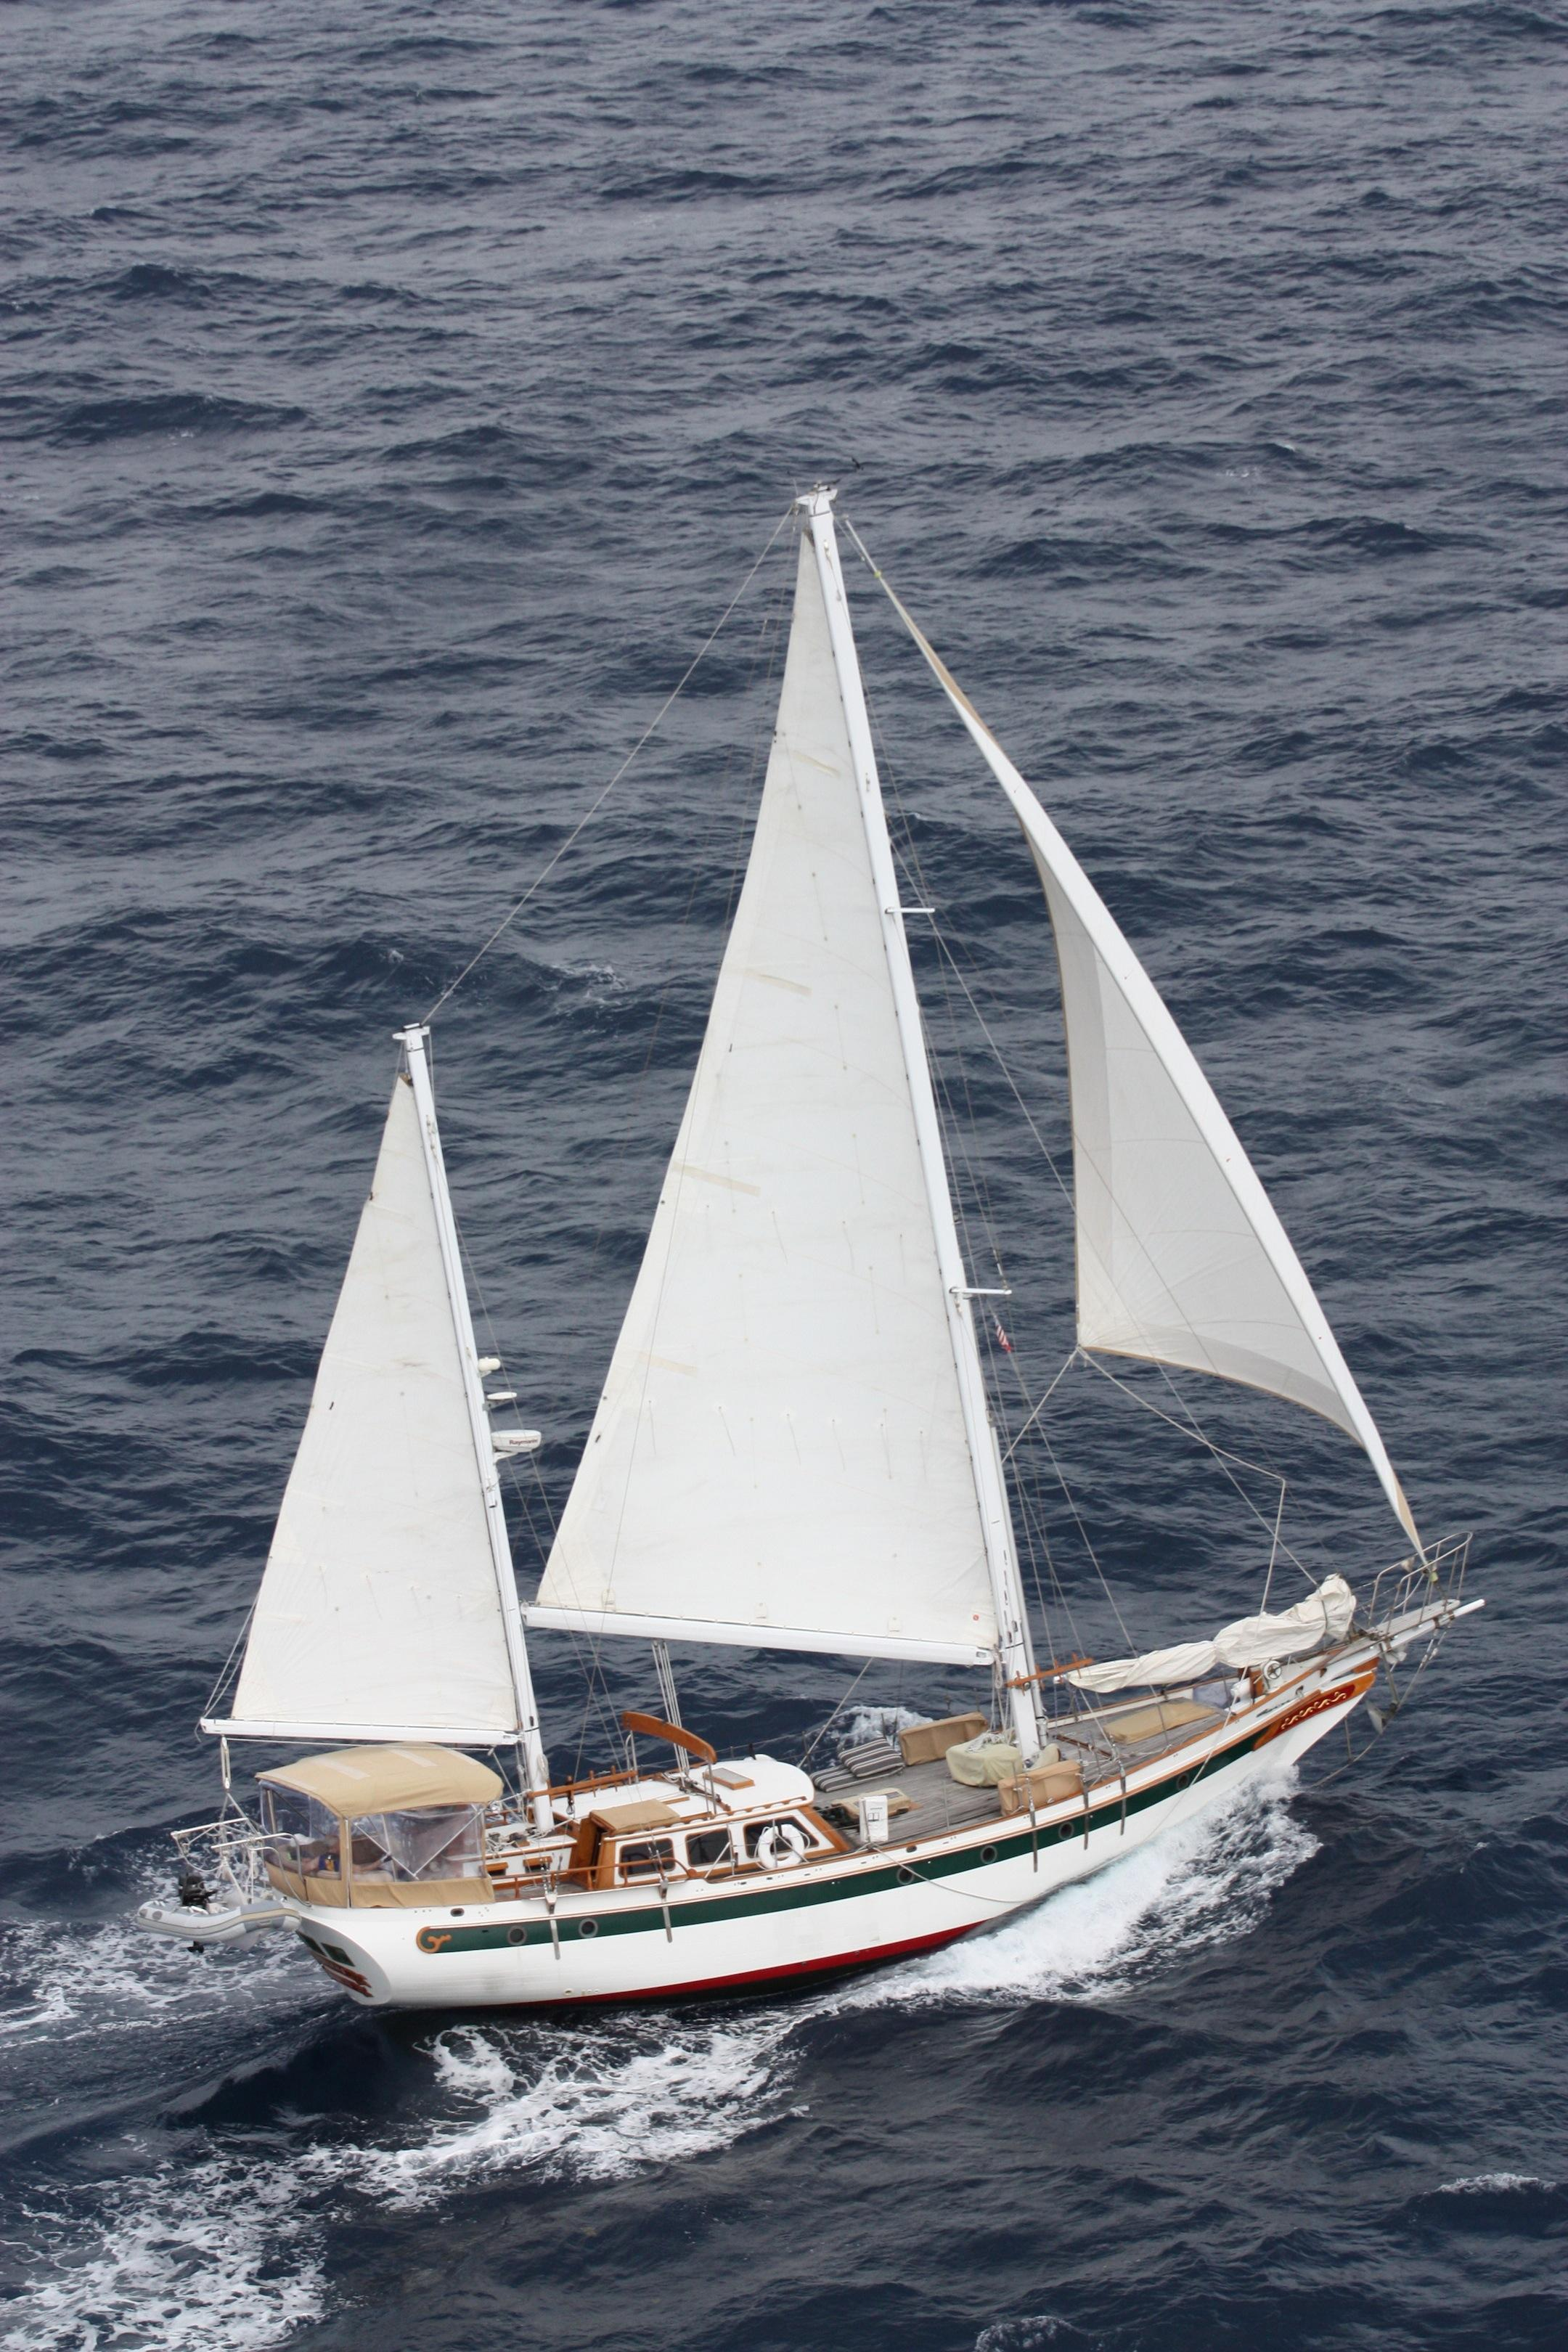 51' Formosa 1974 Cutter Ketch